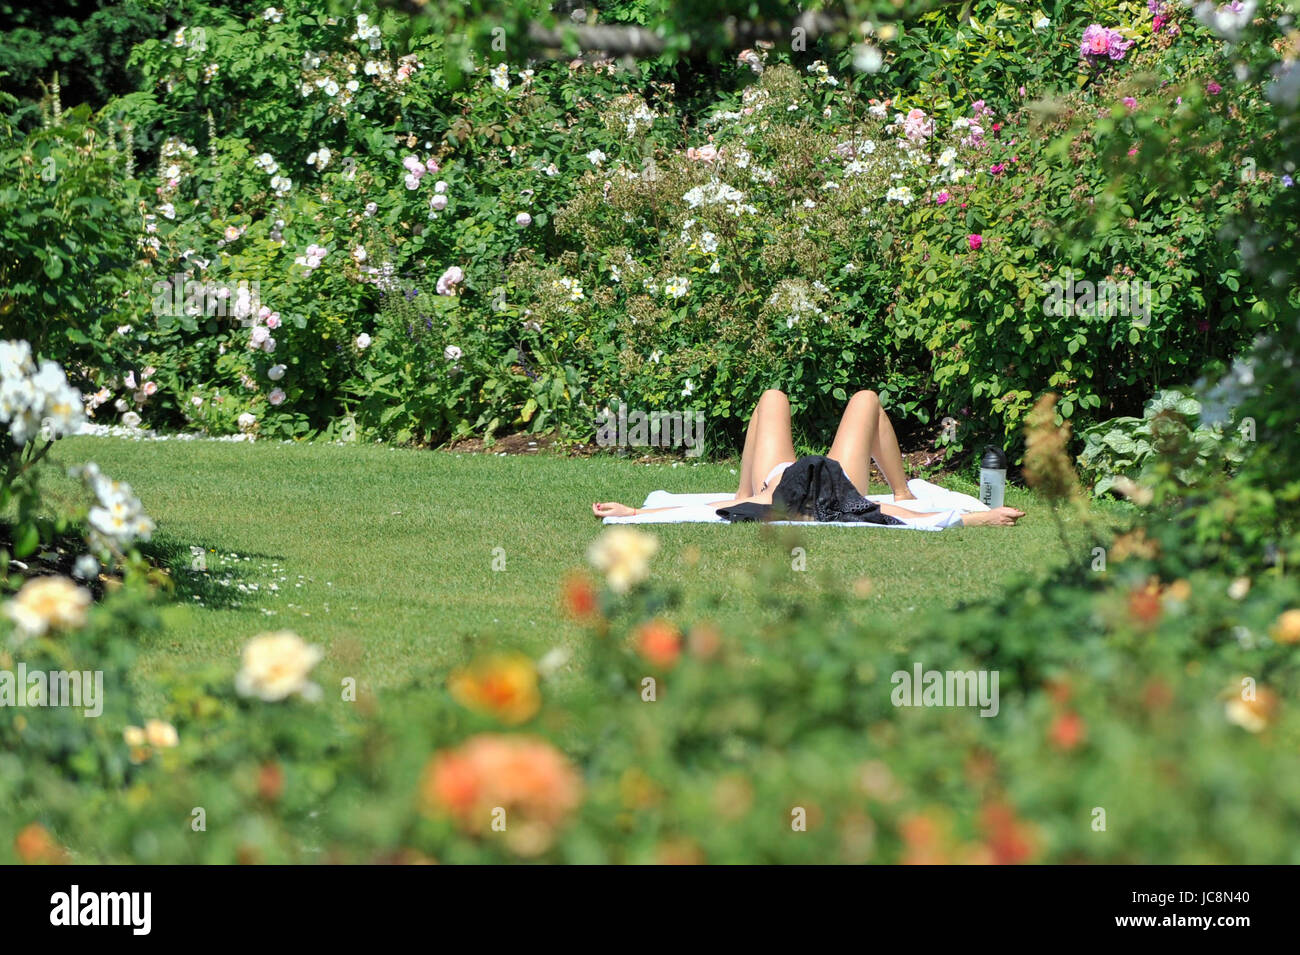 London, UK.  14 June 2017.  A sunbather relaxes amidst the floral displays in Regent's Park in fine weather. - Stock Image